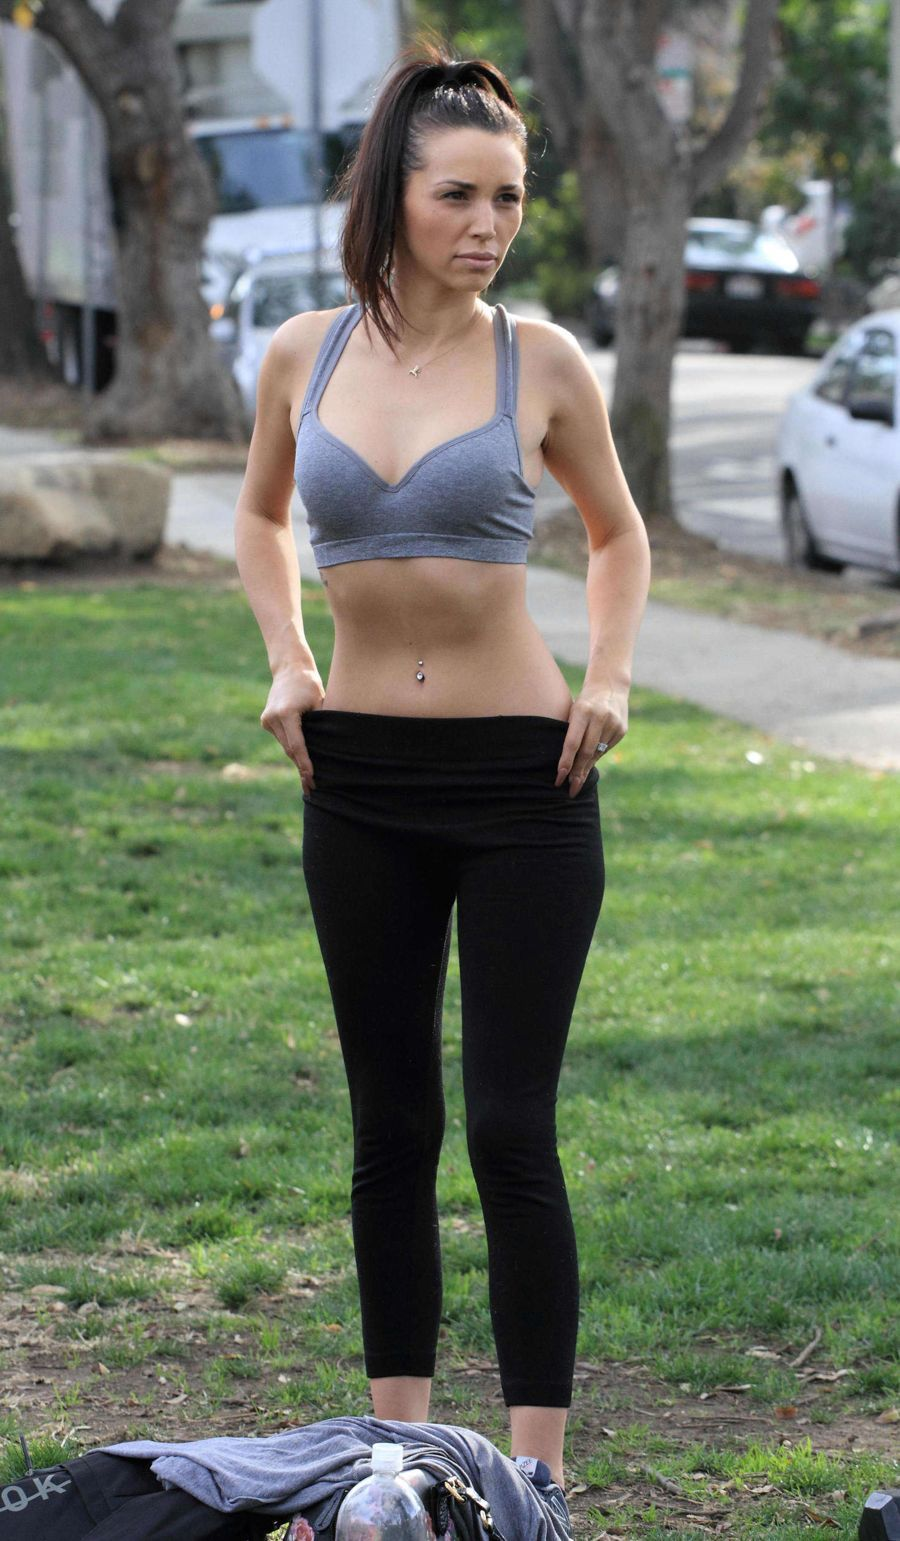 Scheana Marie Shay works out at the park in Los Angeles